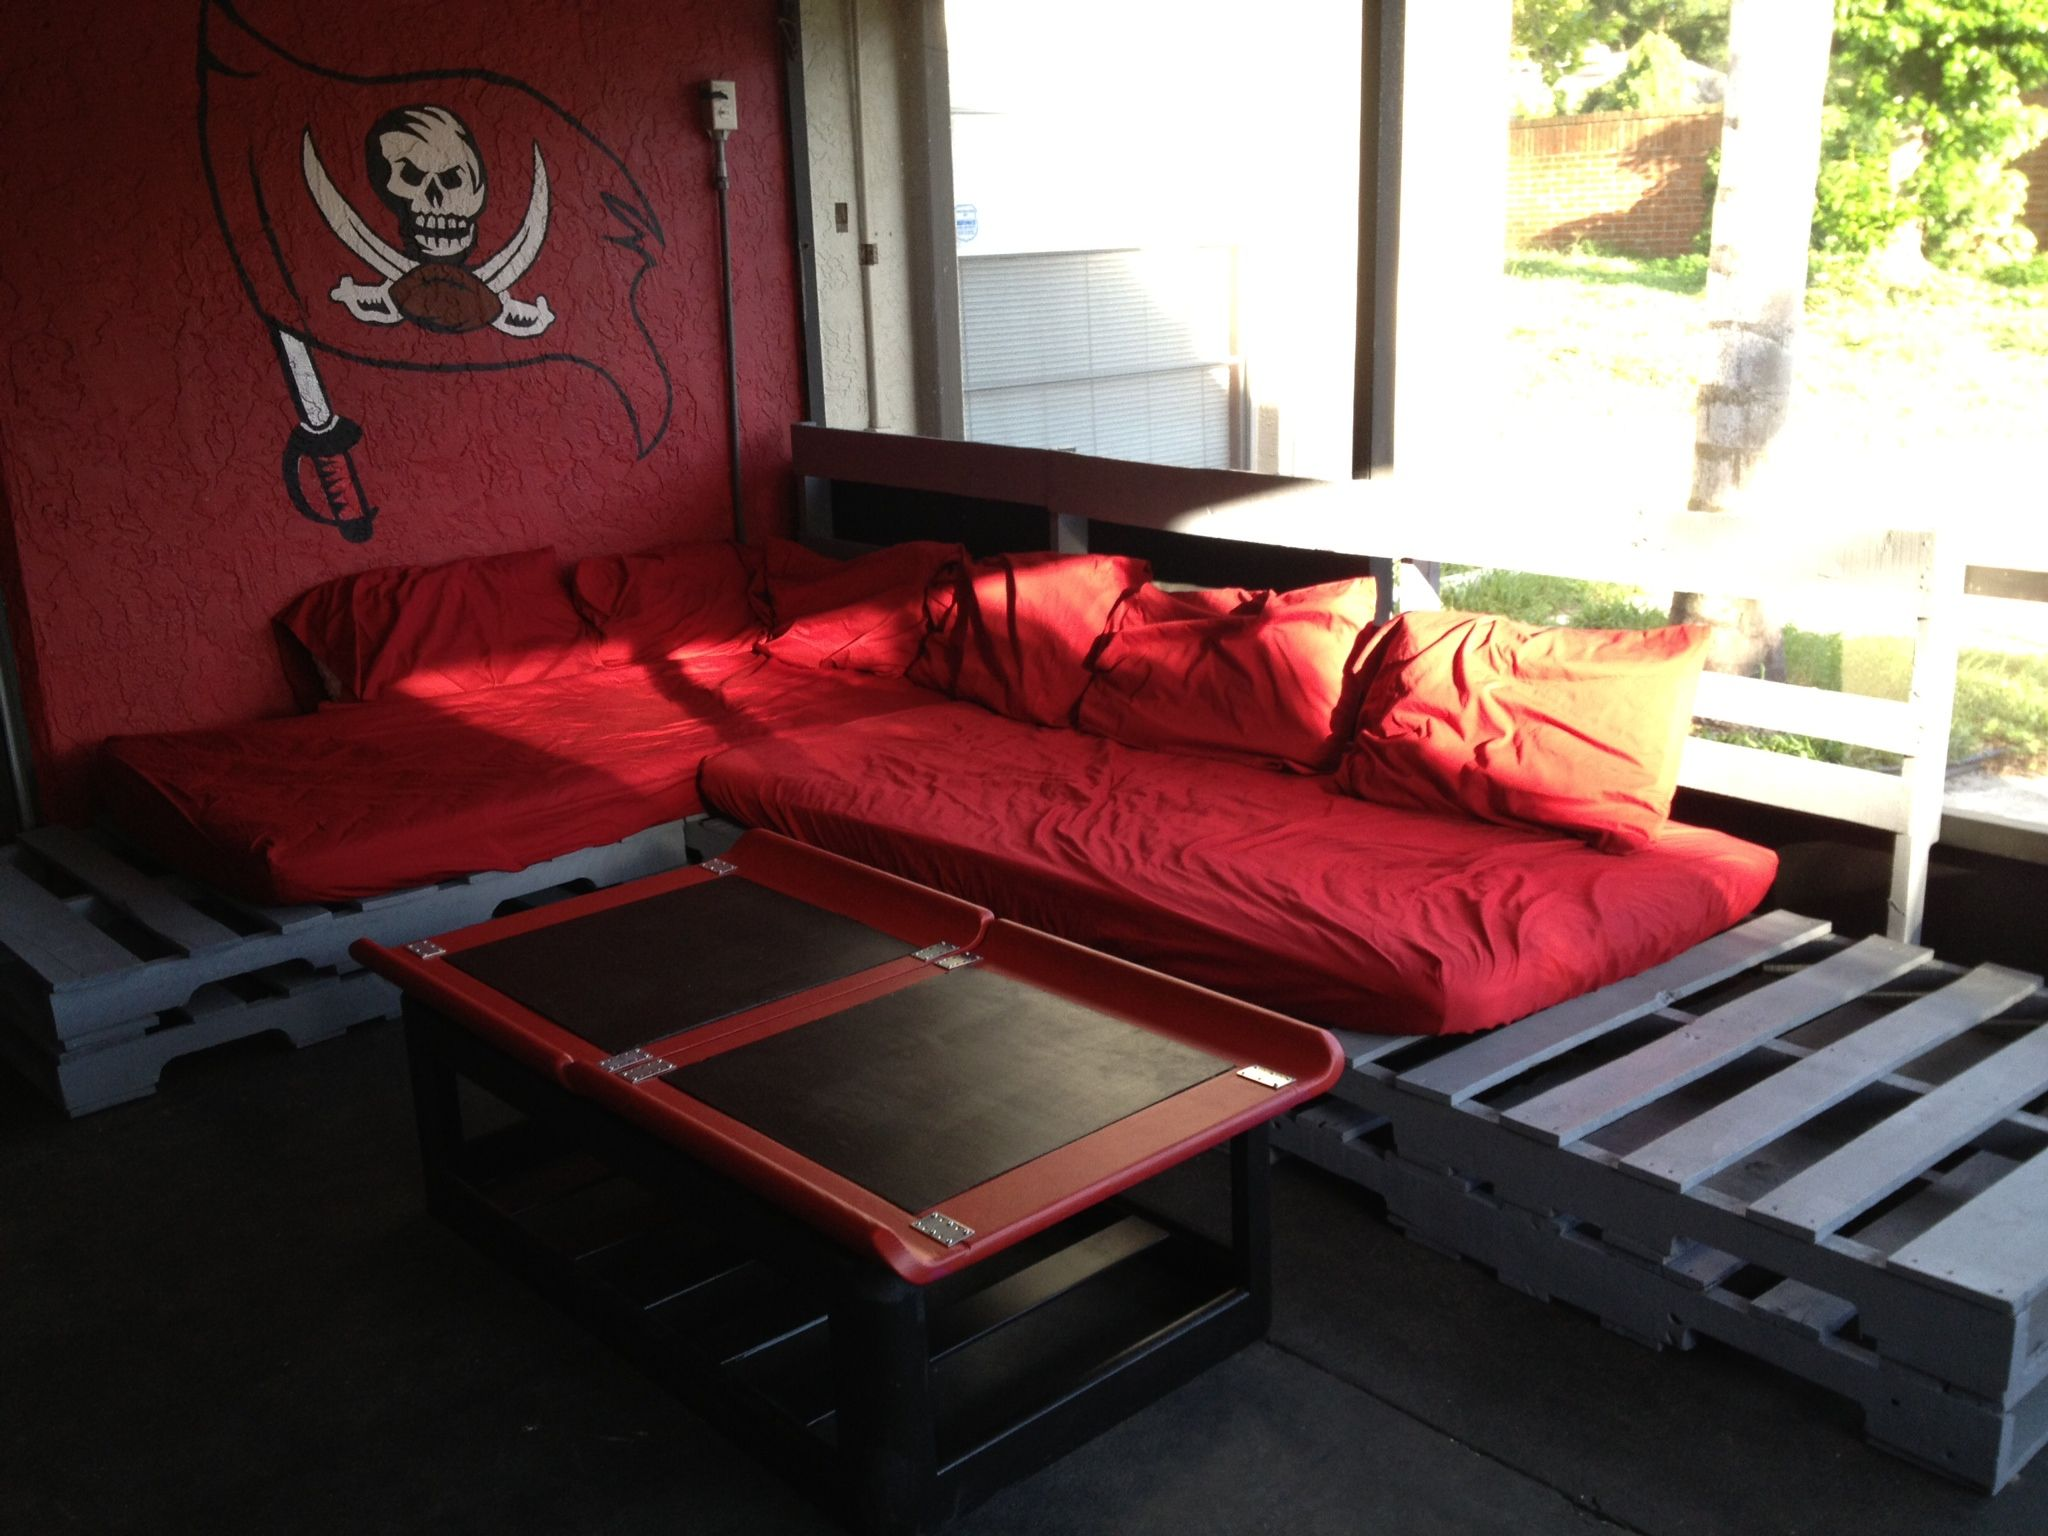 Recycled Wood Pallet L Shaped Couch On My Buccaneers